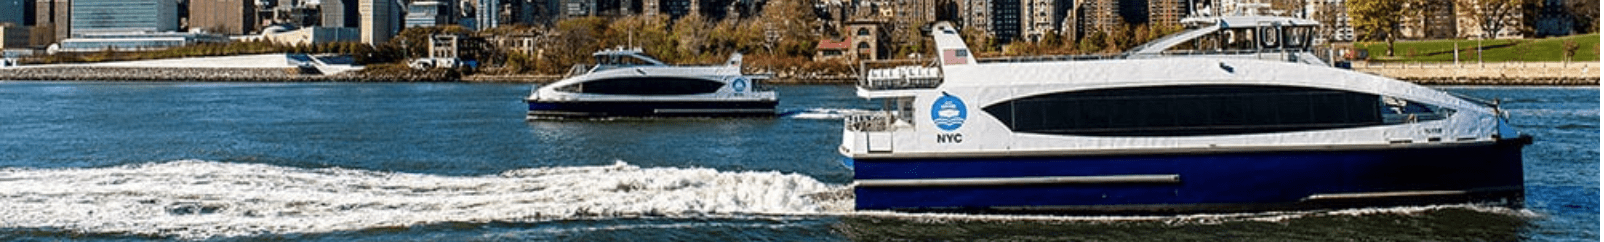 NYC Ferry and Midtown Manhattan view